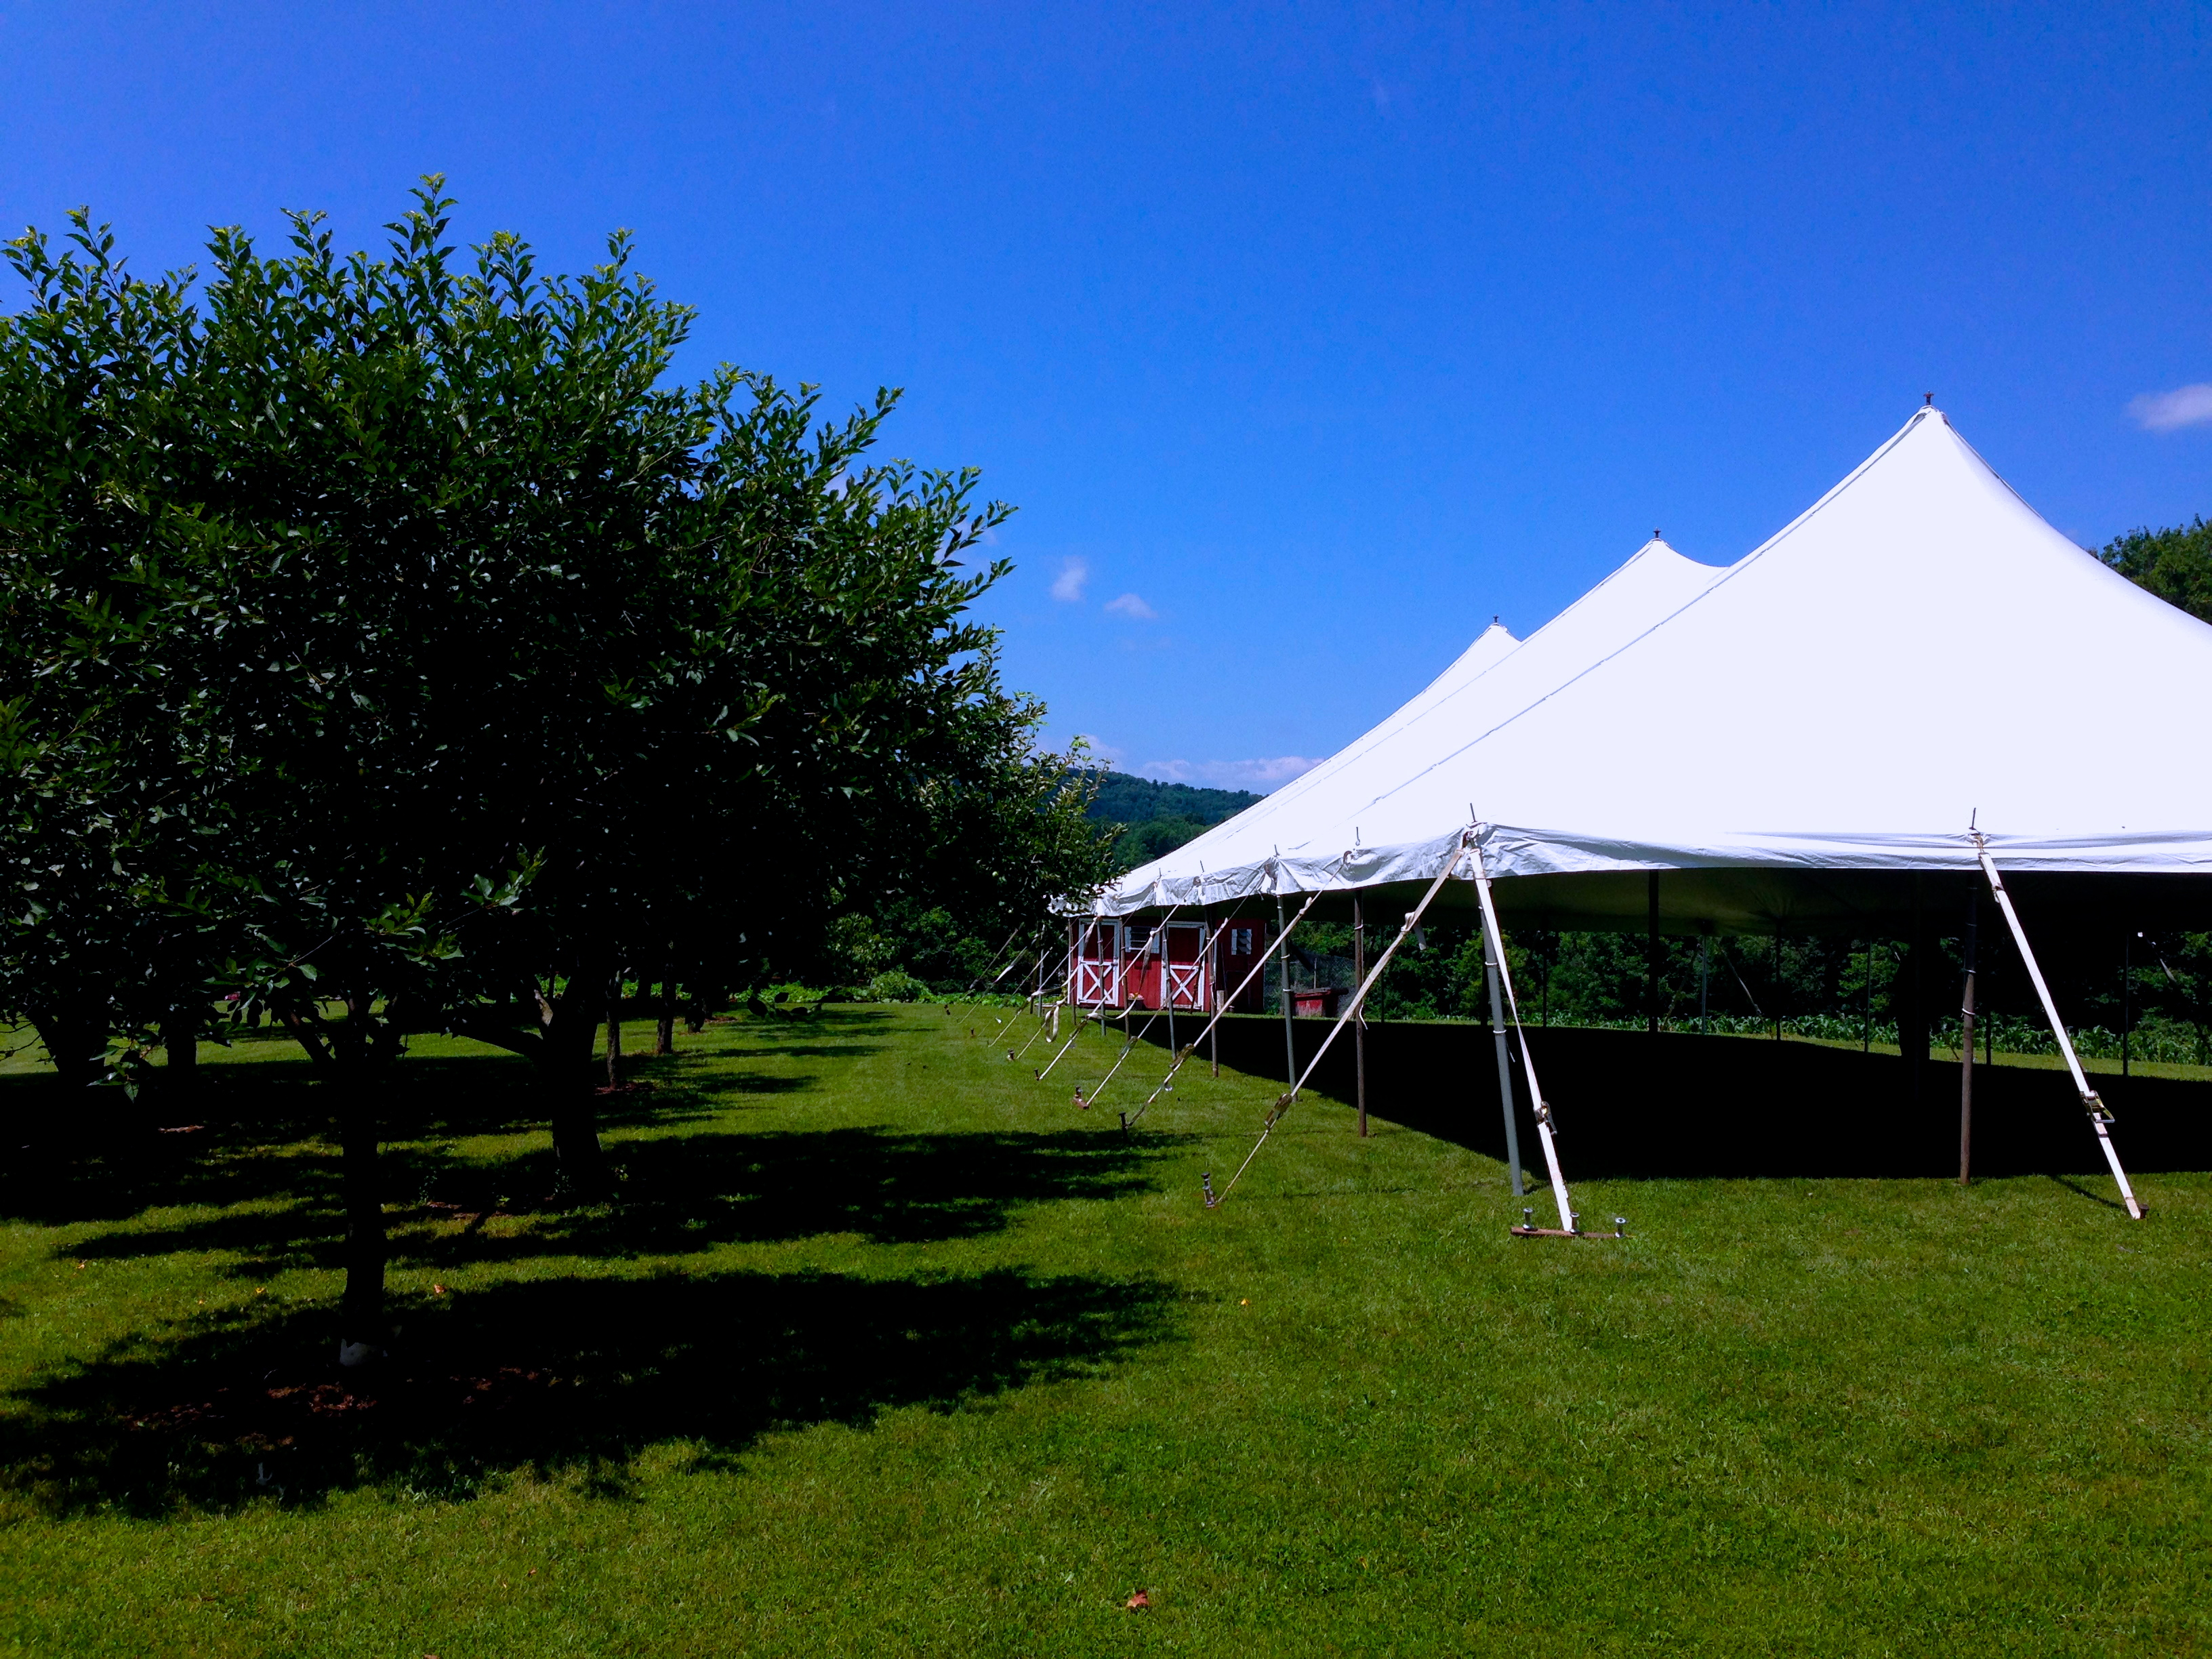 Pole Tents Big Top Rentals The Largest Tent And Party